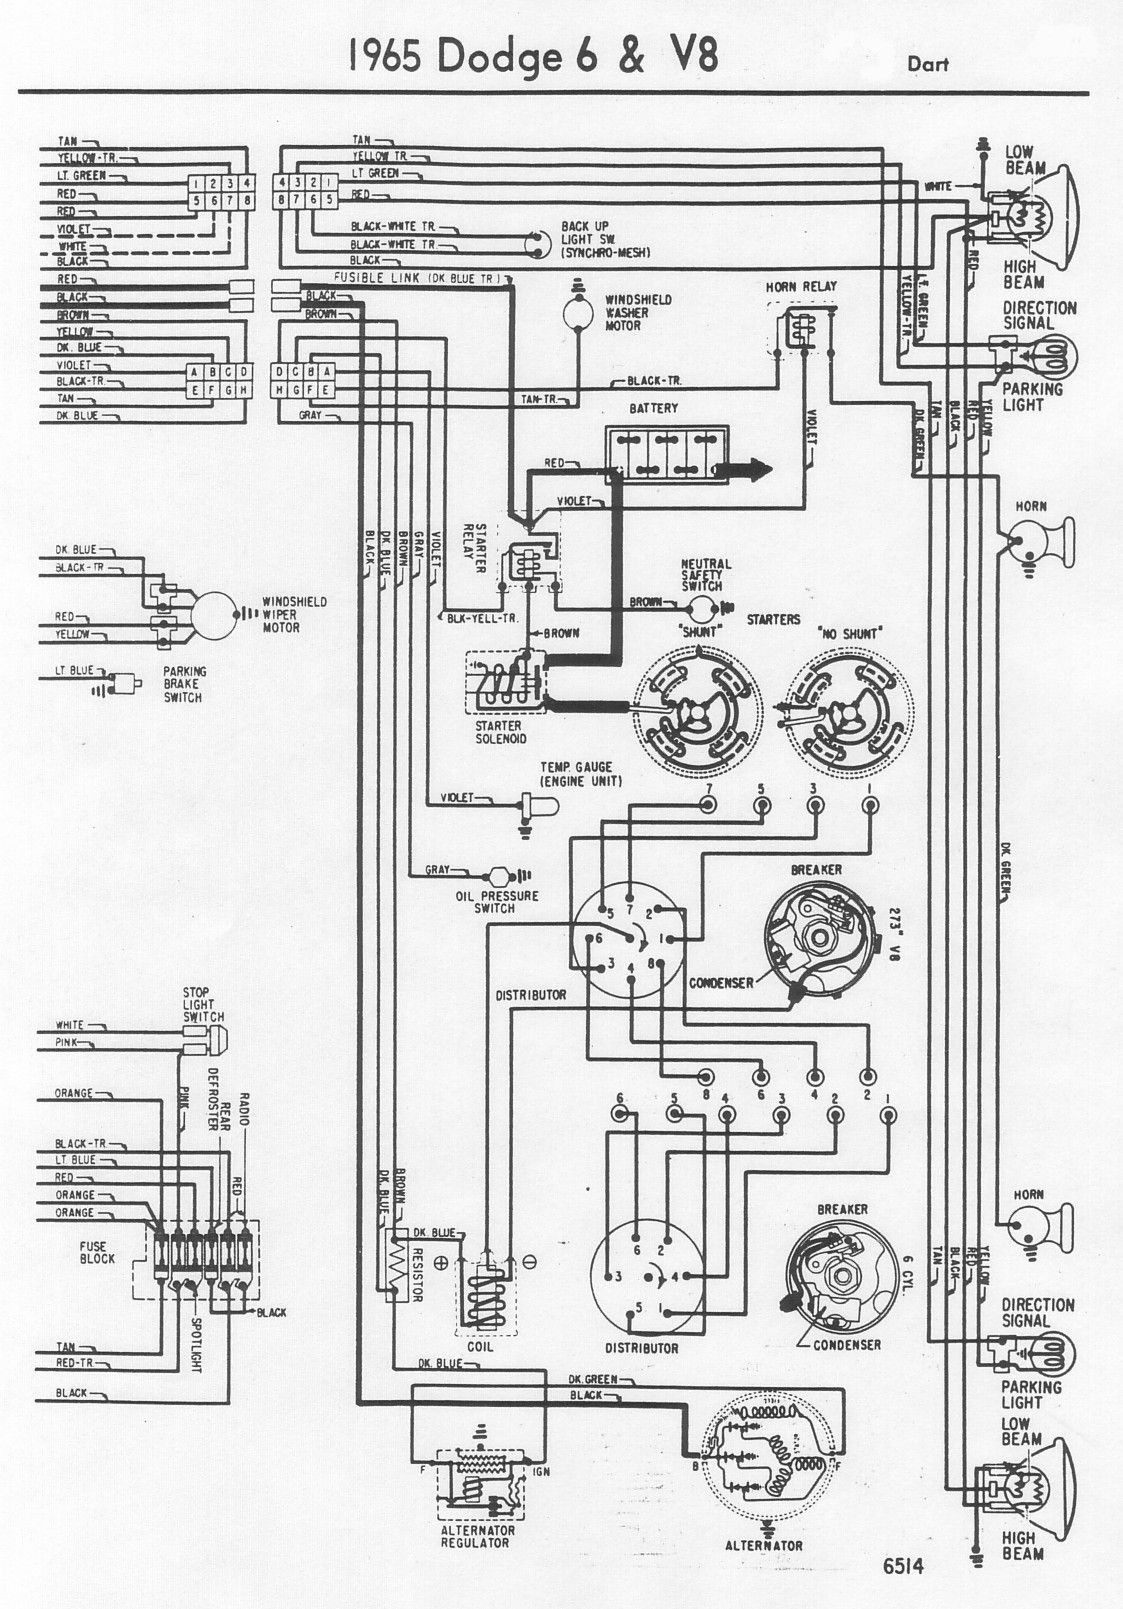 1968 Dodge Coronet Wiring Diagram : 33 Wiring Diagram